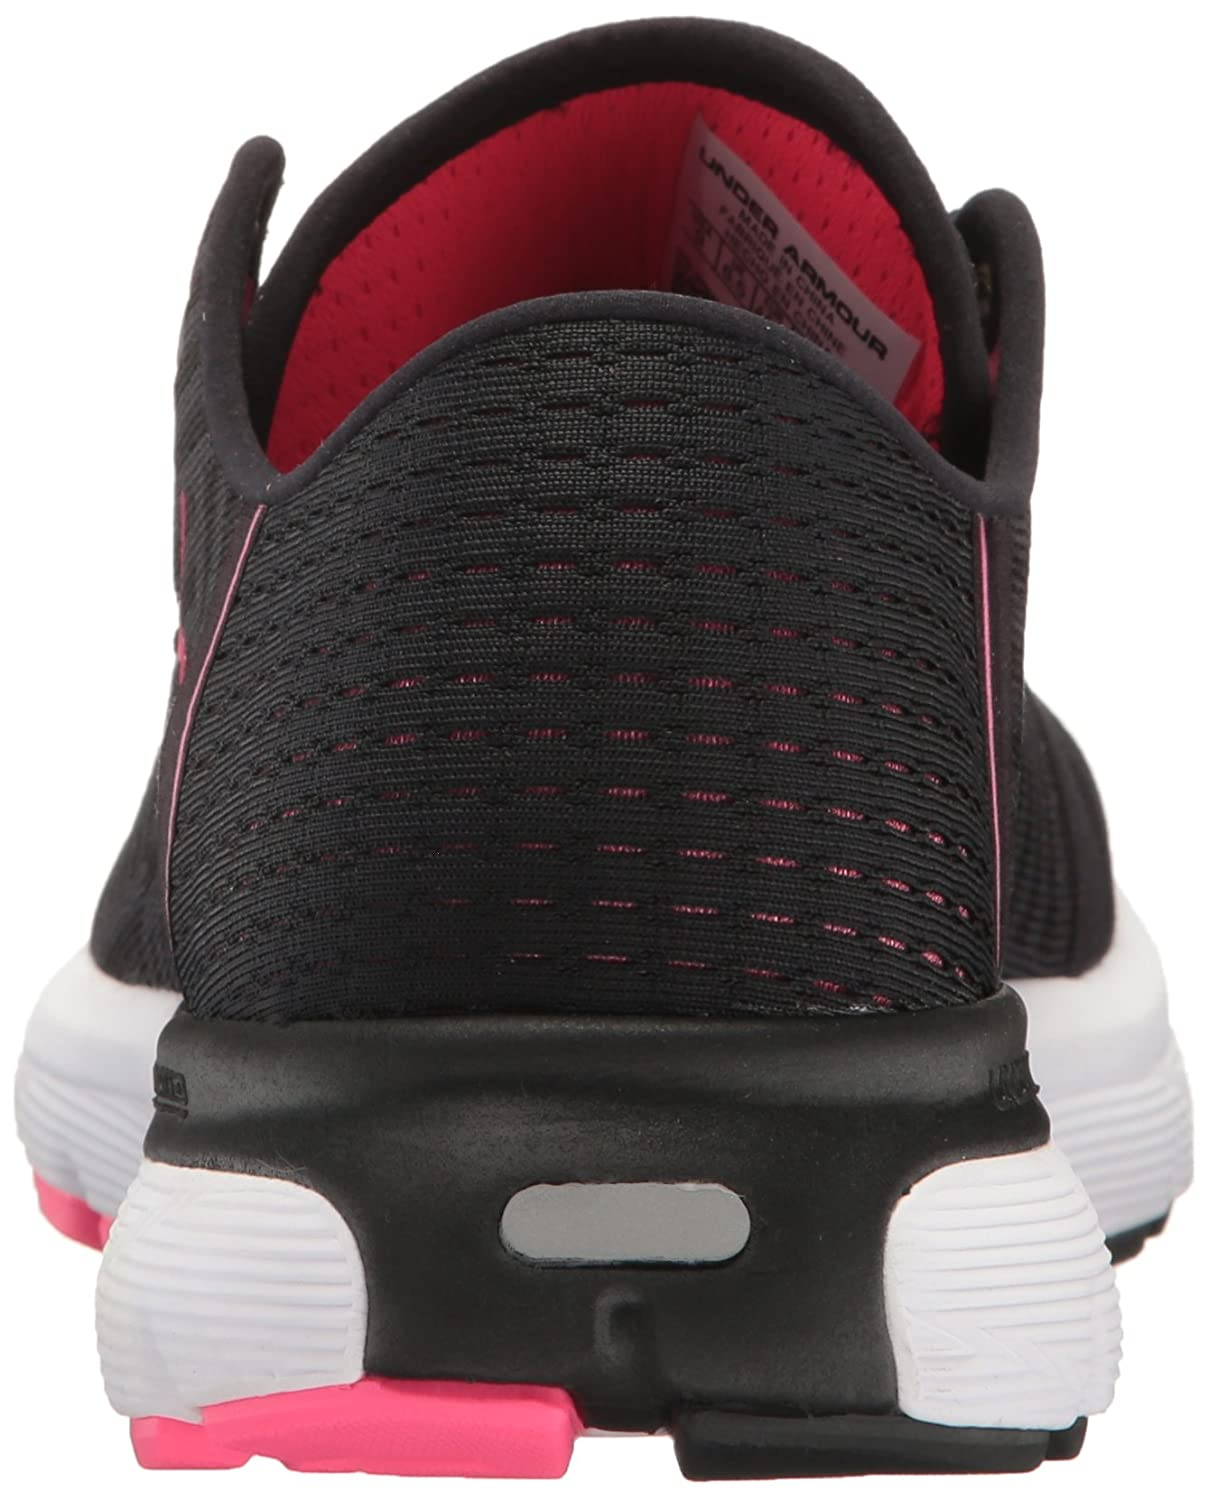 Under Armour Women's Speedform Gemini 3 Running Shoe B01GP2Z4CK 12 B(M) US|Black (003)/White